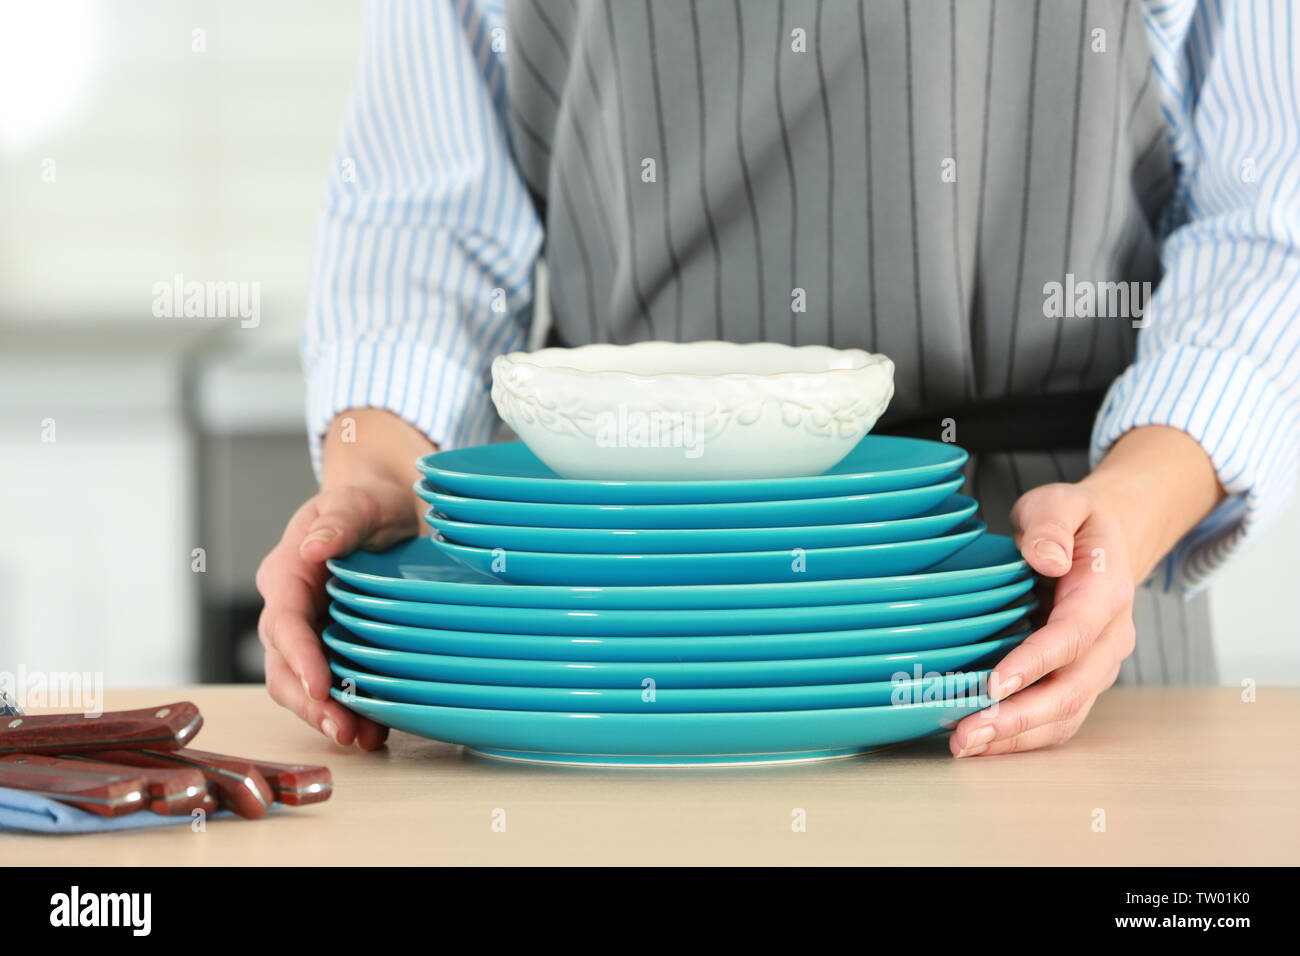 Female hands holding dishes on kitchen counter - Stock Image